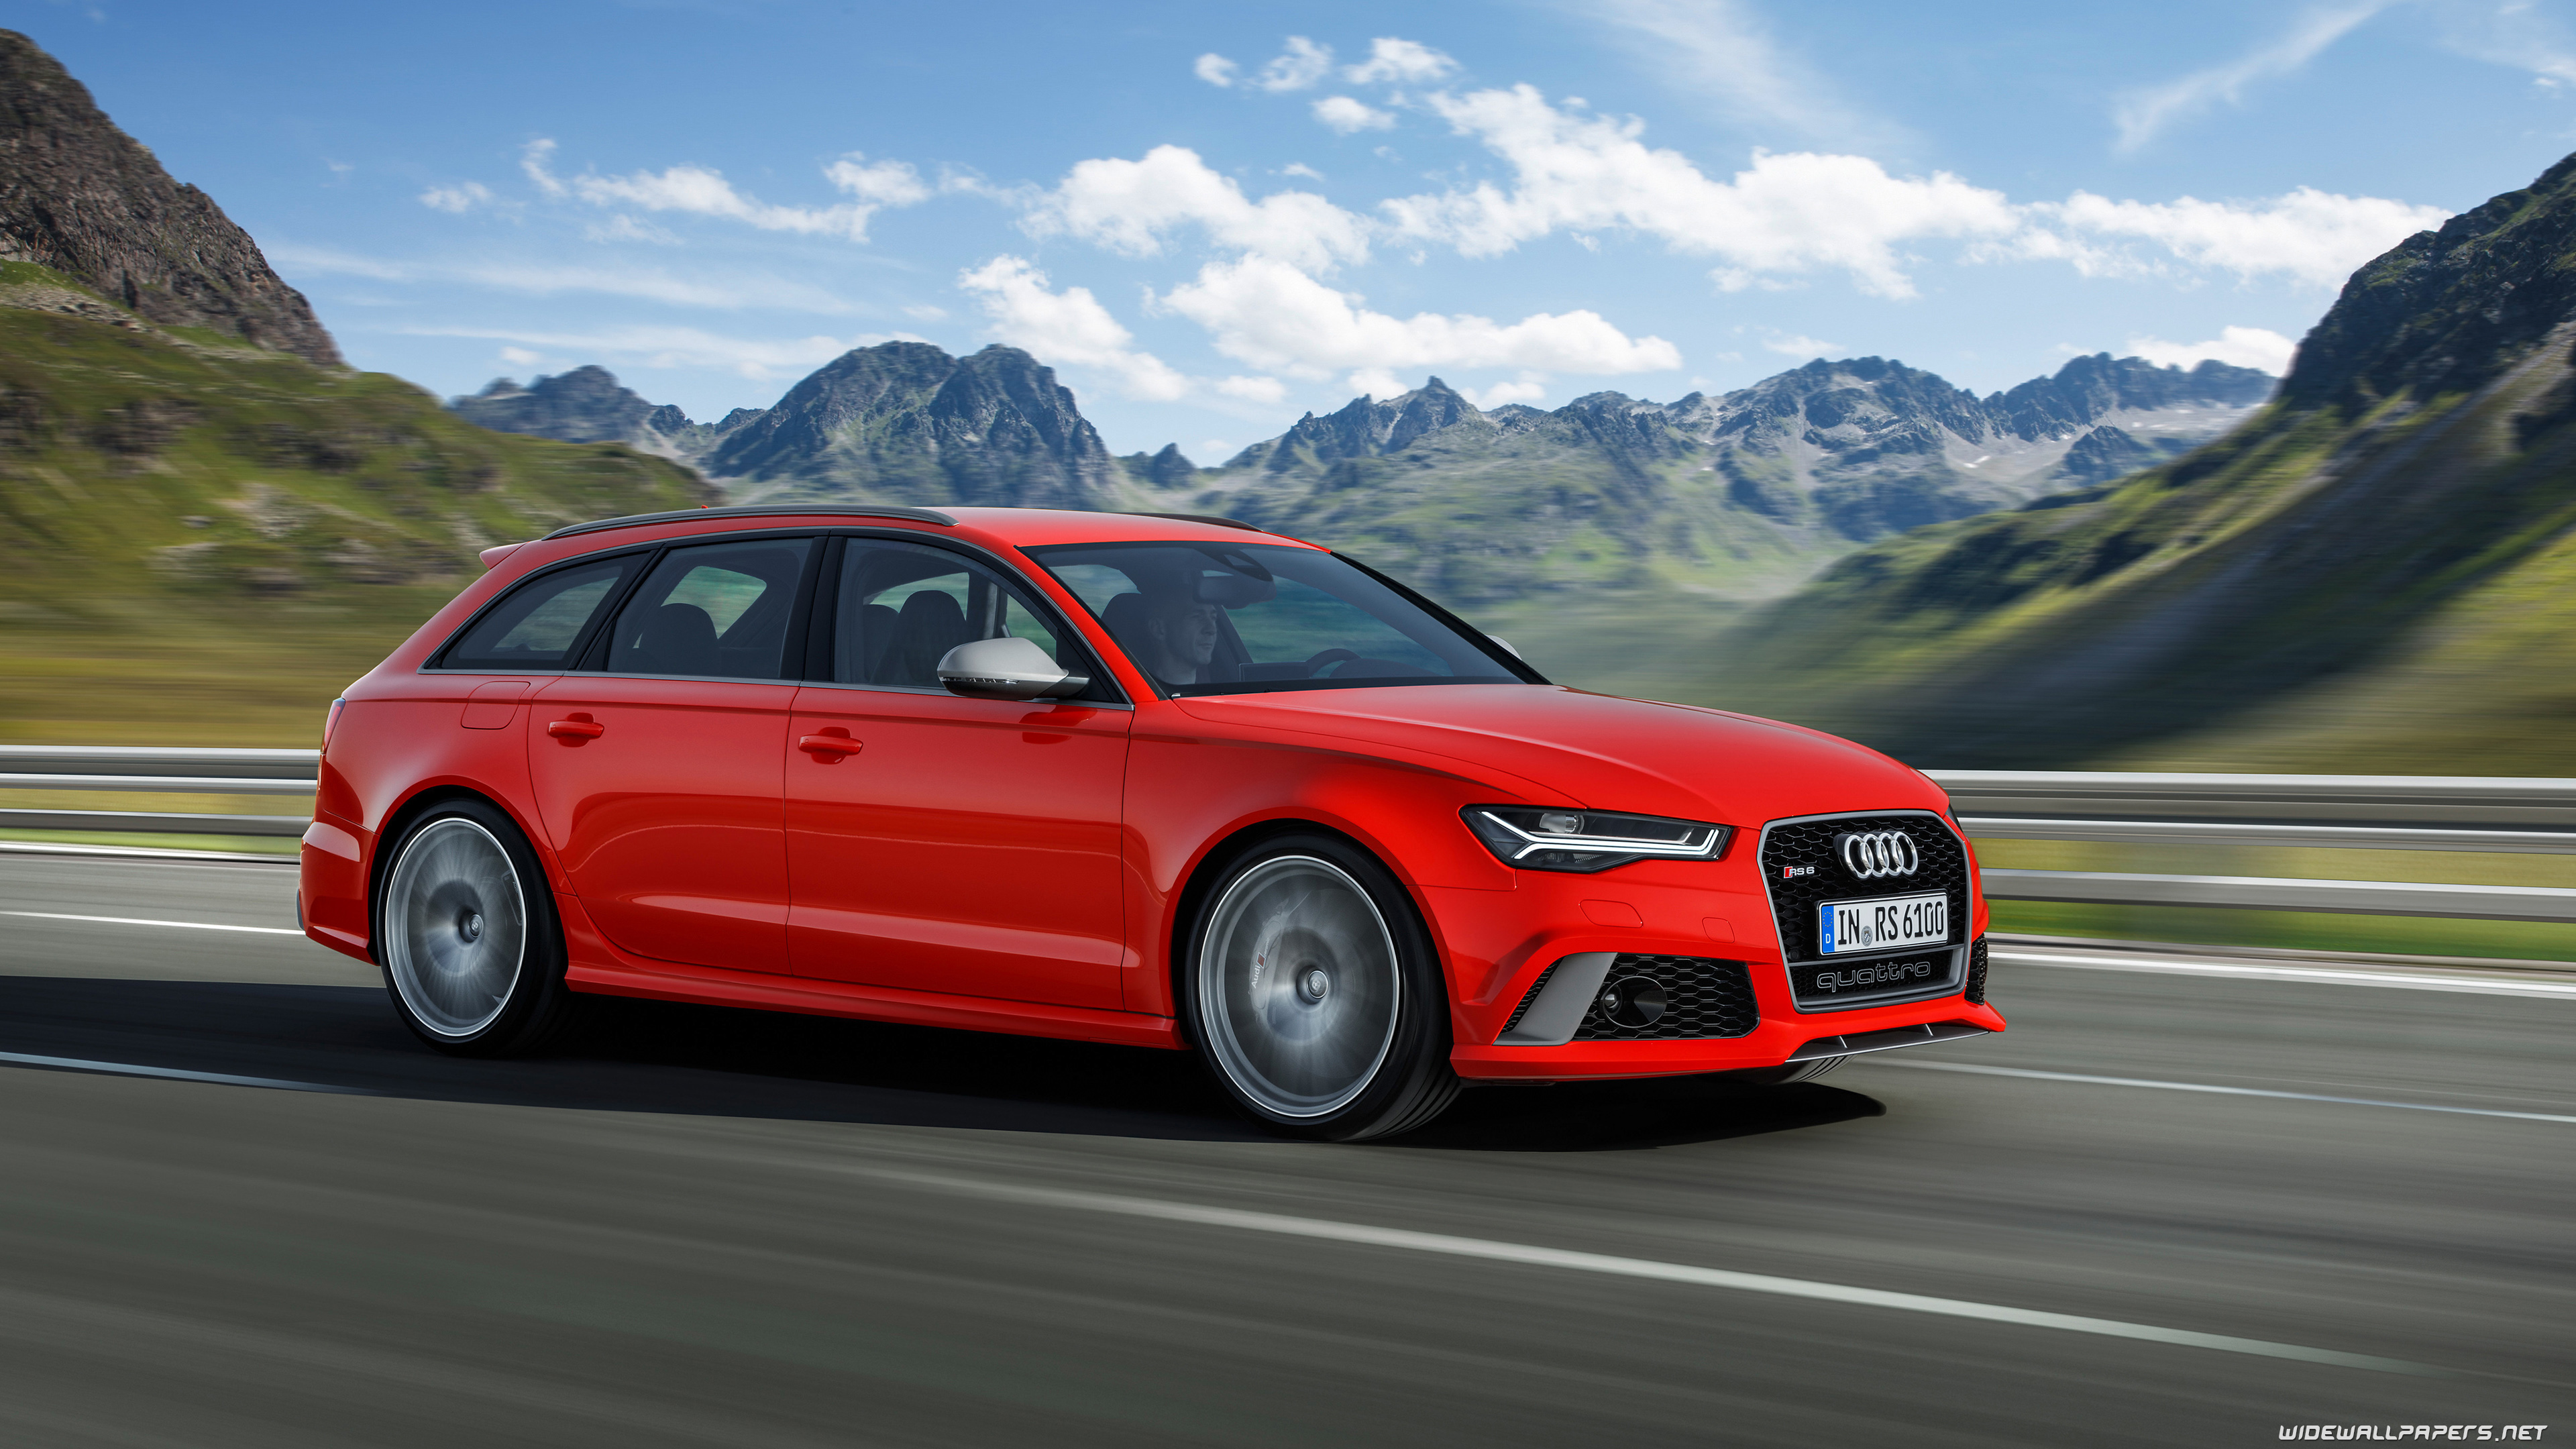 Audi Rs6 Cars Desktop Wallpapers 4k Ultra Hd